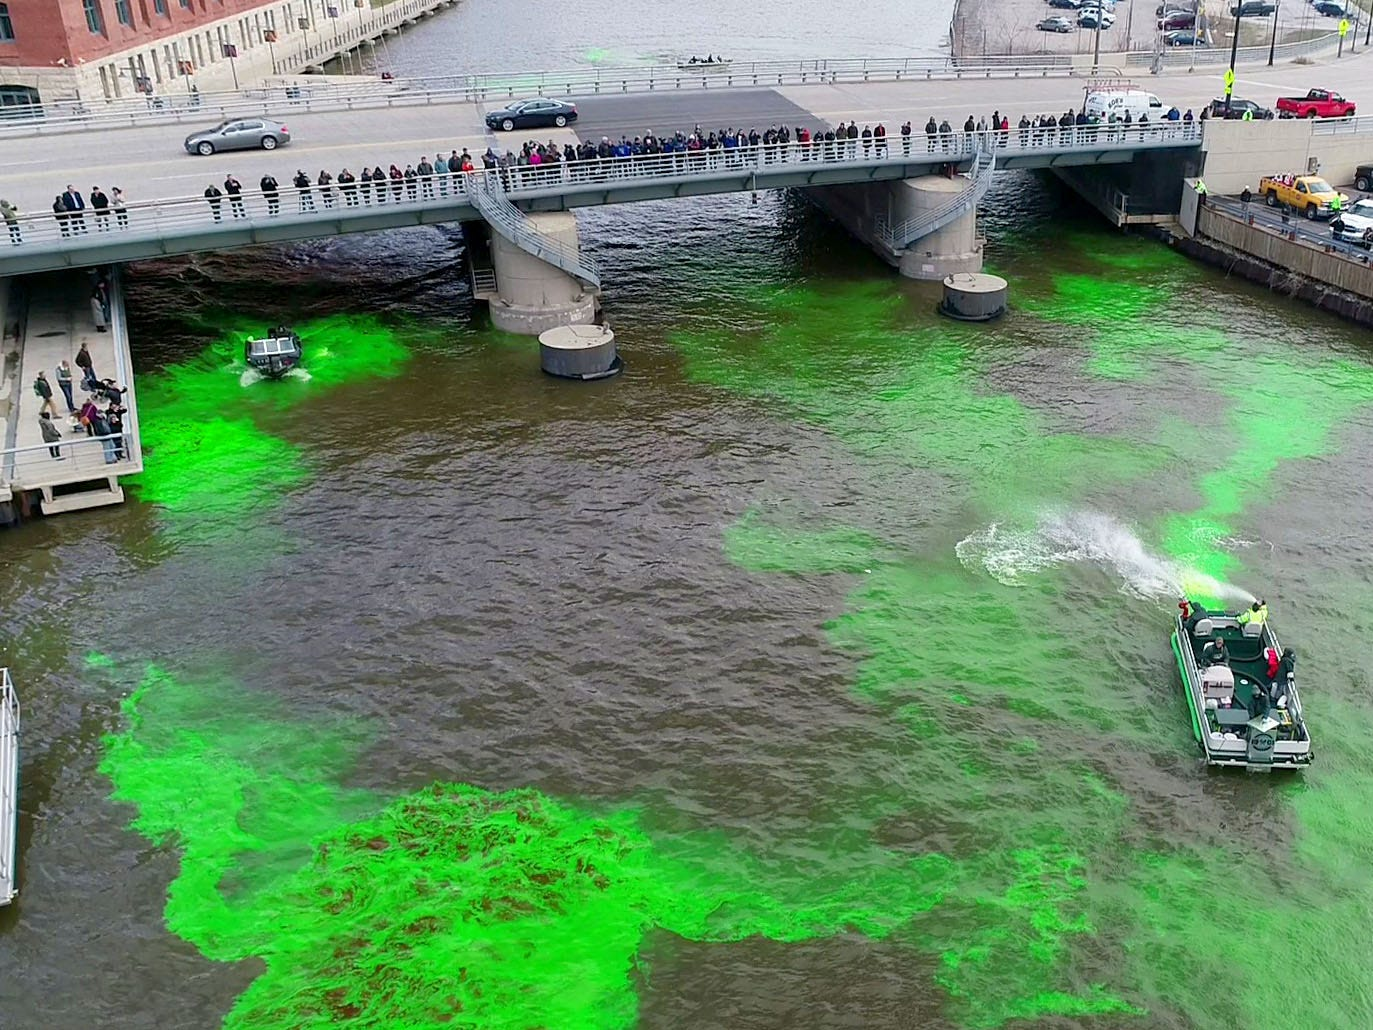 A boat swirls around the green dye near the West  McKinley Avenue bridge. Milwaukee celebrated the start of the Milwaukee Bucks in the NBA Playoffs by dyeing the Milwaukee River green in Milwaukee on Friday, April 12, 2019. The Bucks partnered with the city and the state Department of Natural Resources to dye the river green and throw a kickoff party near Fiserv Forum.